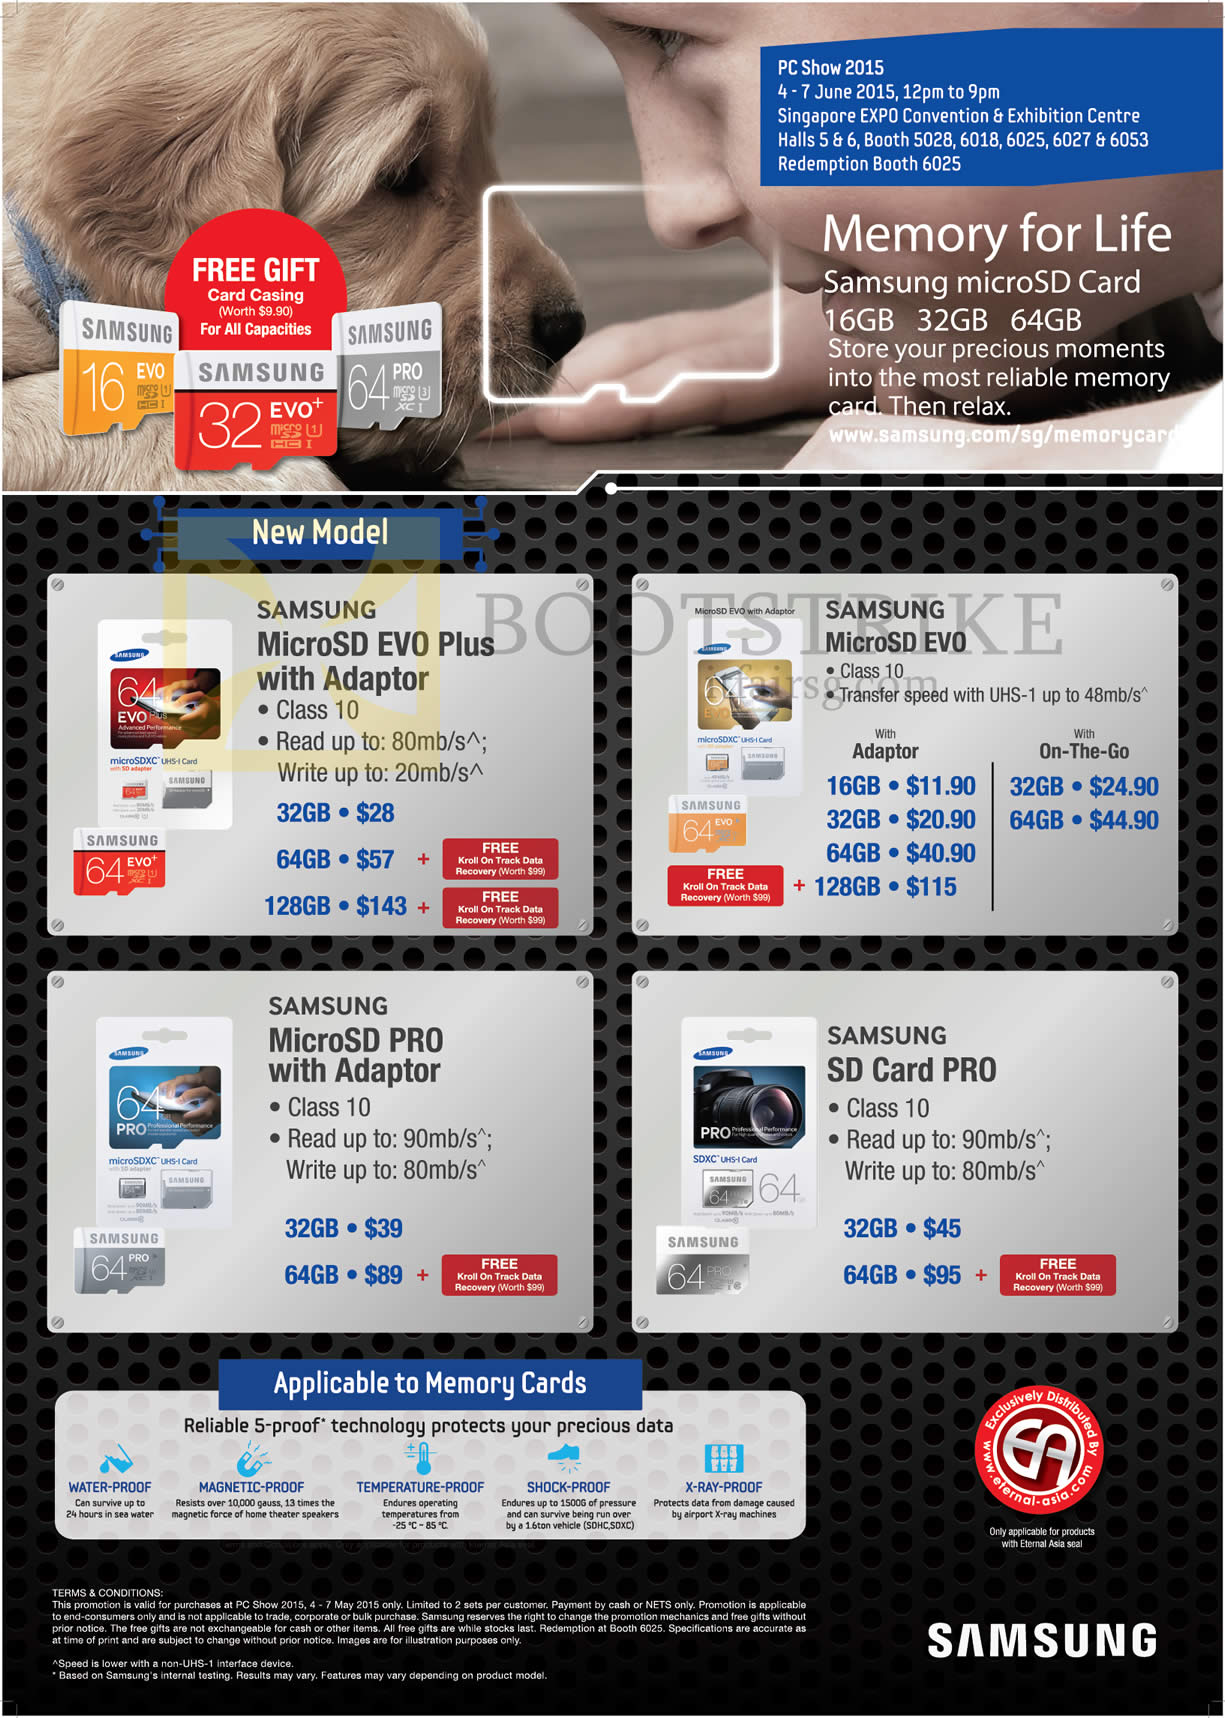 Samsung Memory Microsd Evo Plus Sd Card Pro 16gb 32gb 64gb 128gb Pc Micro 64 Gb With Adapter Show 2015 Price List Image Brochure Of